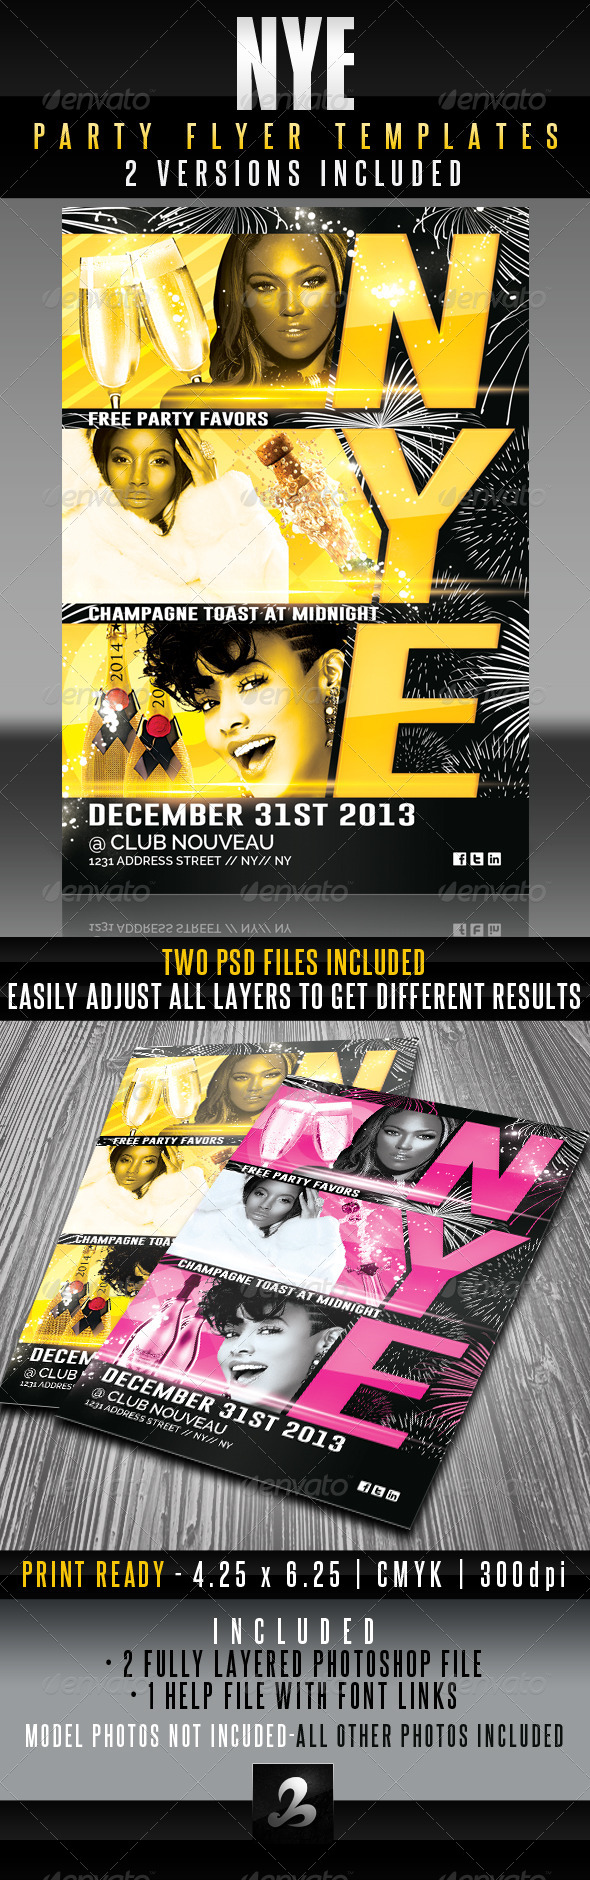 NYE Party Flyer Templates - Holidays Events